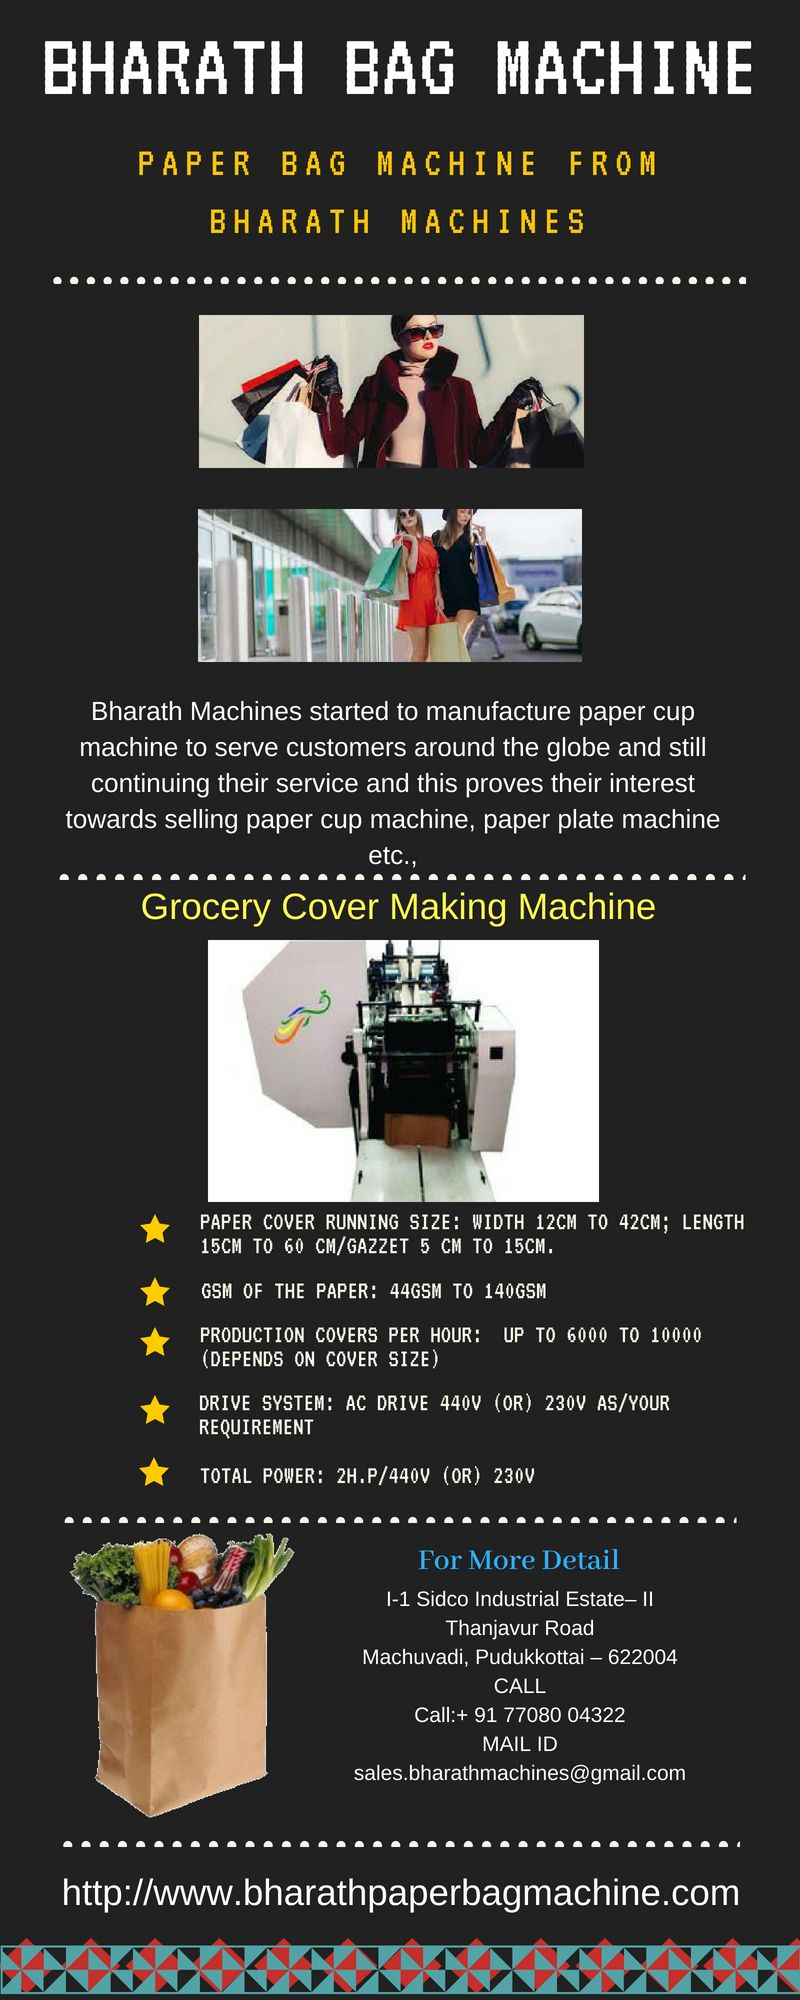 Bharath Machines started to manufacture paper cup machine to